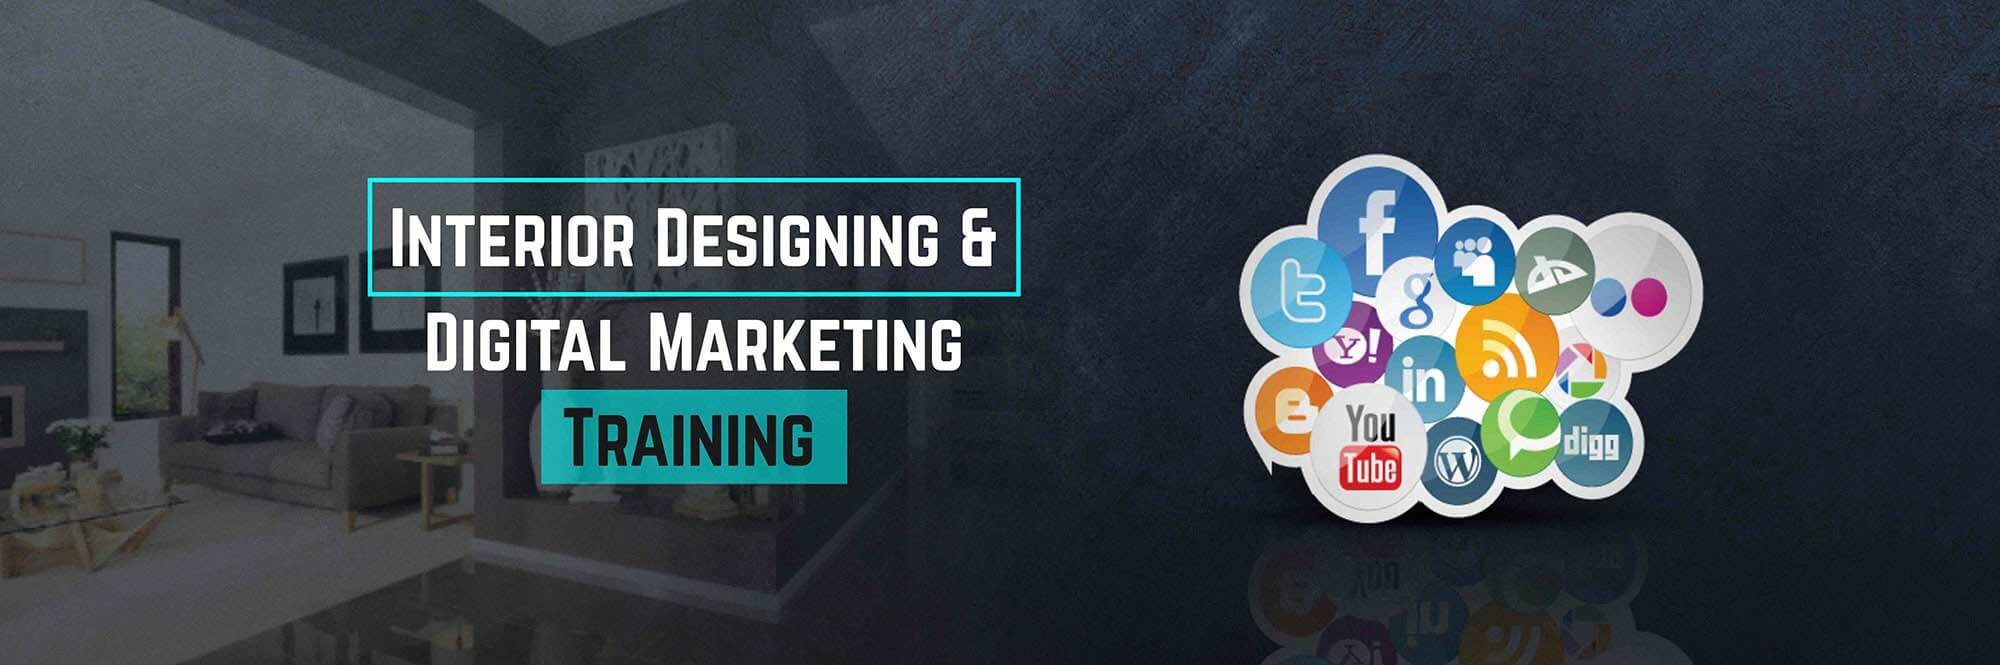 best institute for digital marketing in hyderabad, interior decoration courses in hyderabad